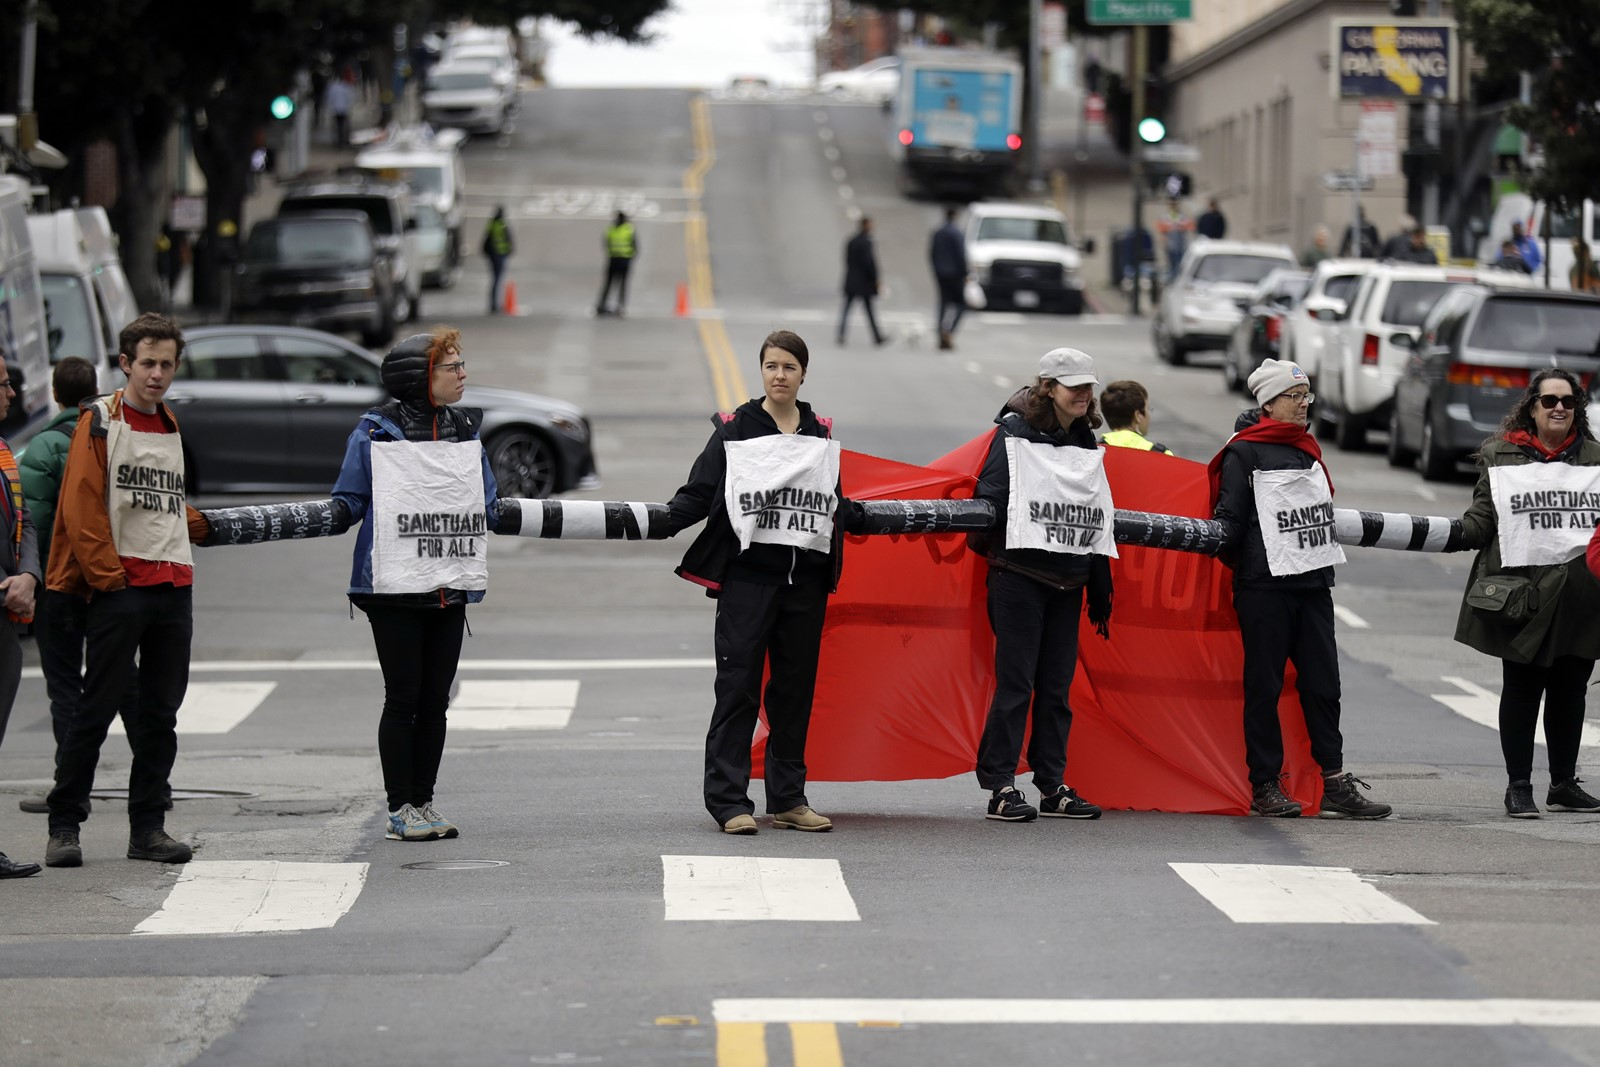 Mayor Libby Schaaf says the immigration raid was aimed not at hardened criminals but at upstanding residents. But some fear her public warning may lead to federal payback. Above, protesters in San Francisco. — Photograph: Marcio Jose Sanchez/Associated Press.